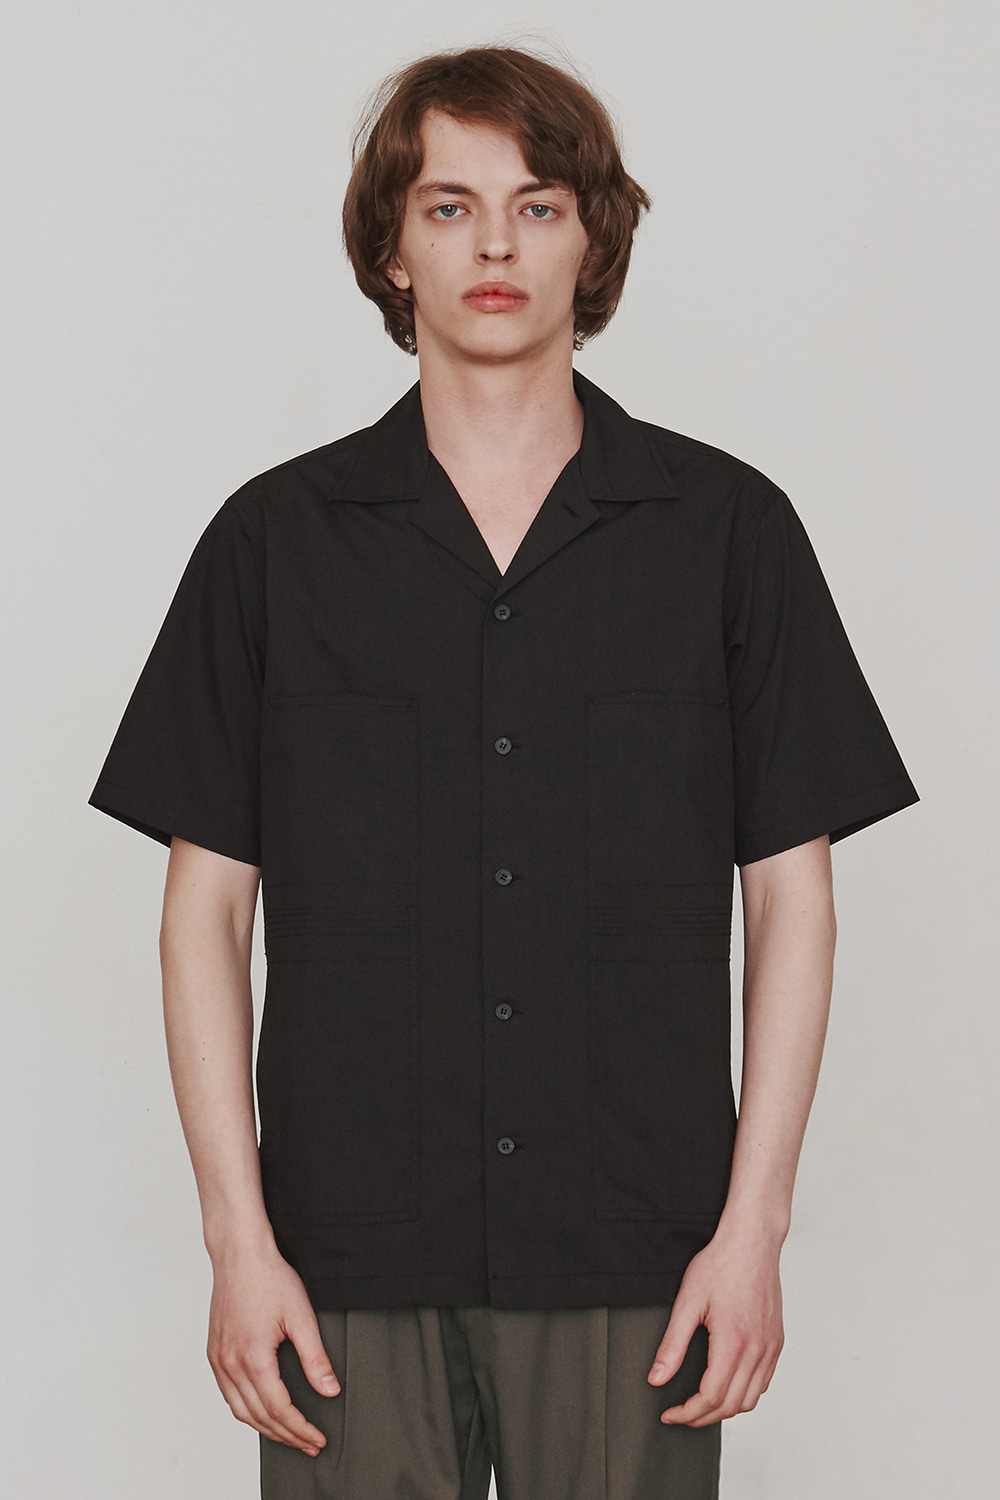 [ESFAI] Finger Stitch Shirts (Black)